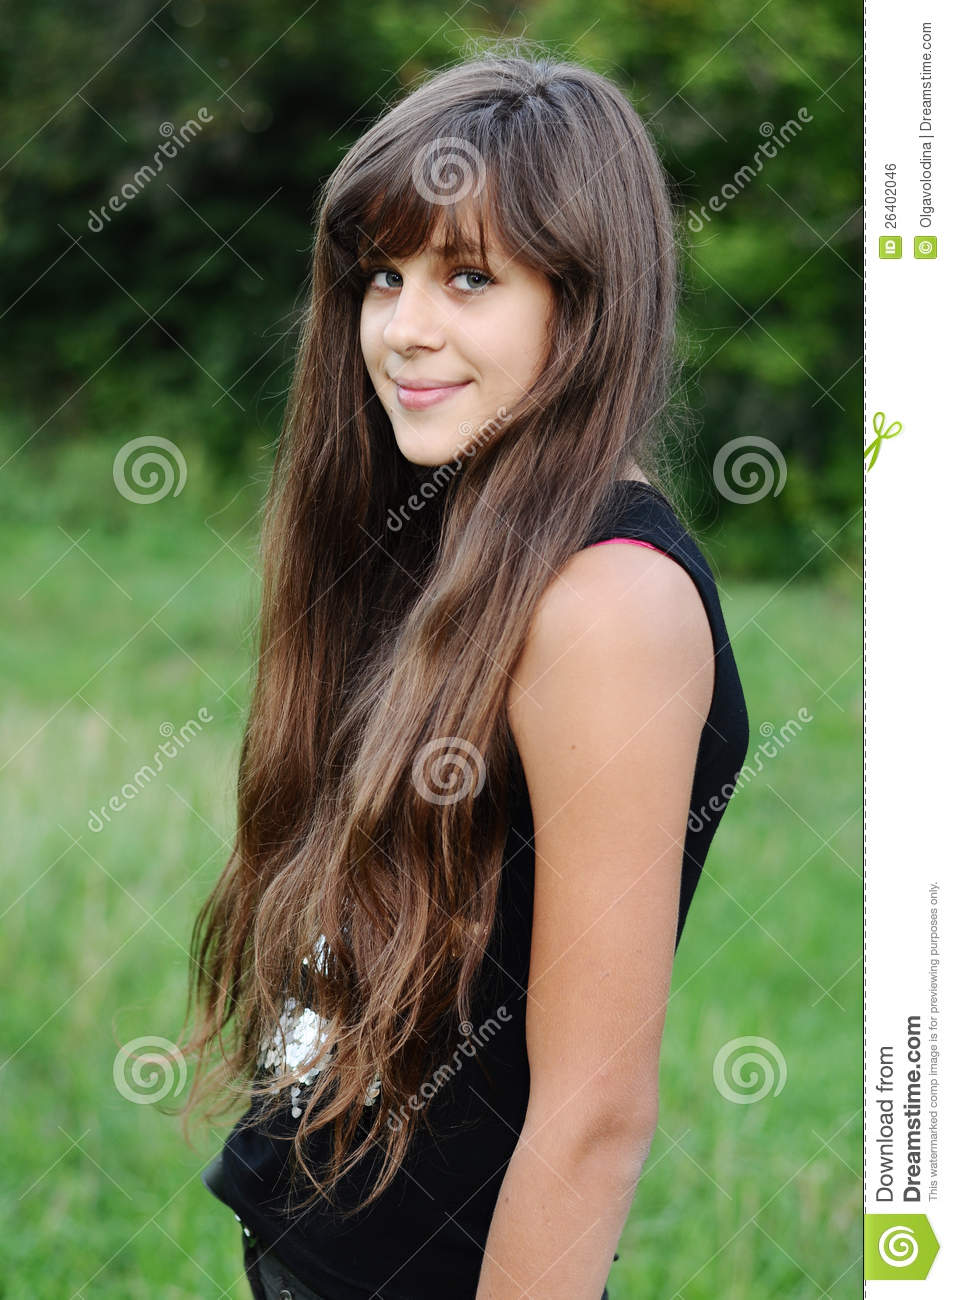 Brunette Teen Girl On Nature Stock Photo